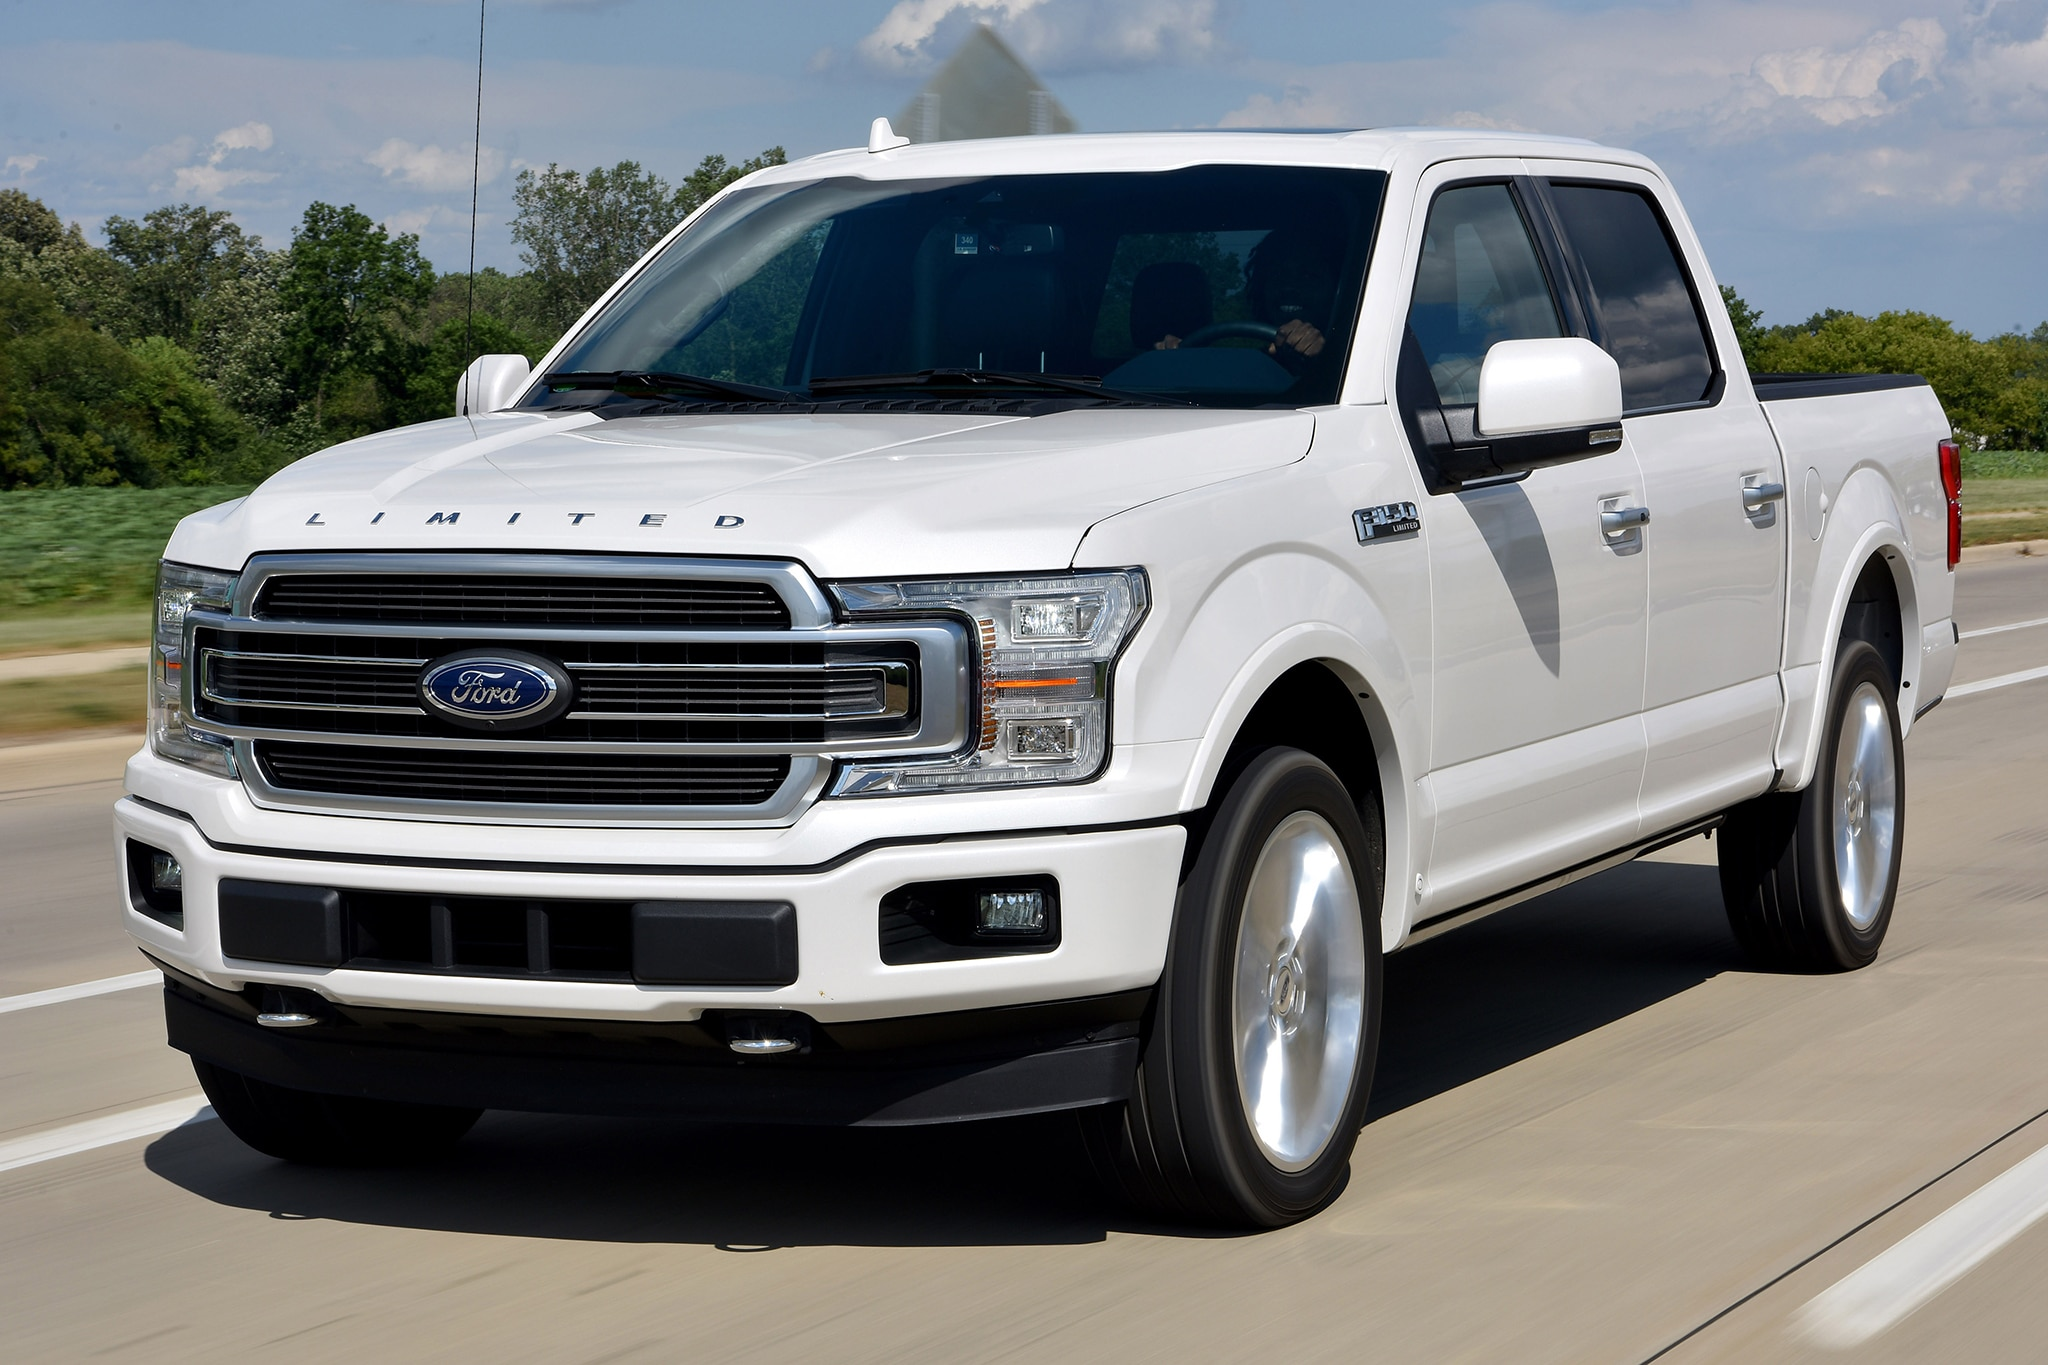 2018 F150 Review >> First Drive: 2018 Ford F-150 | Automobile Magazine